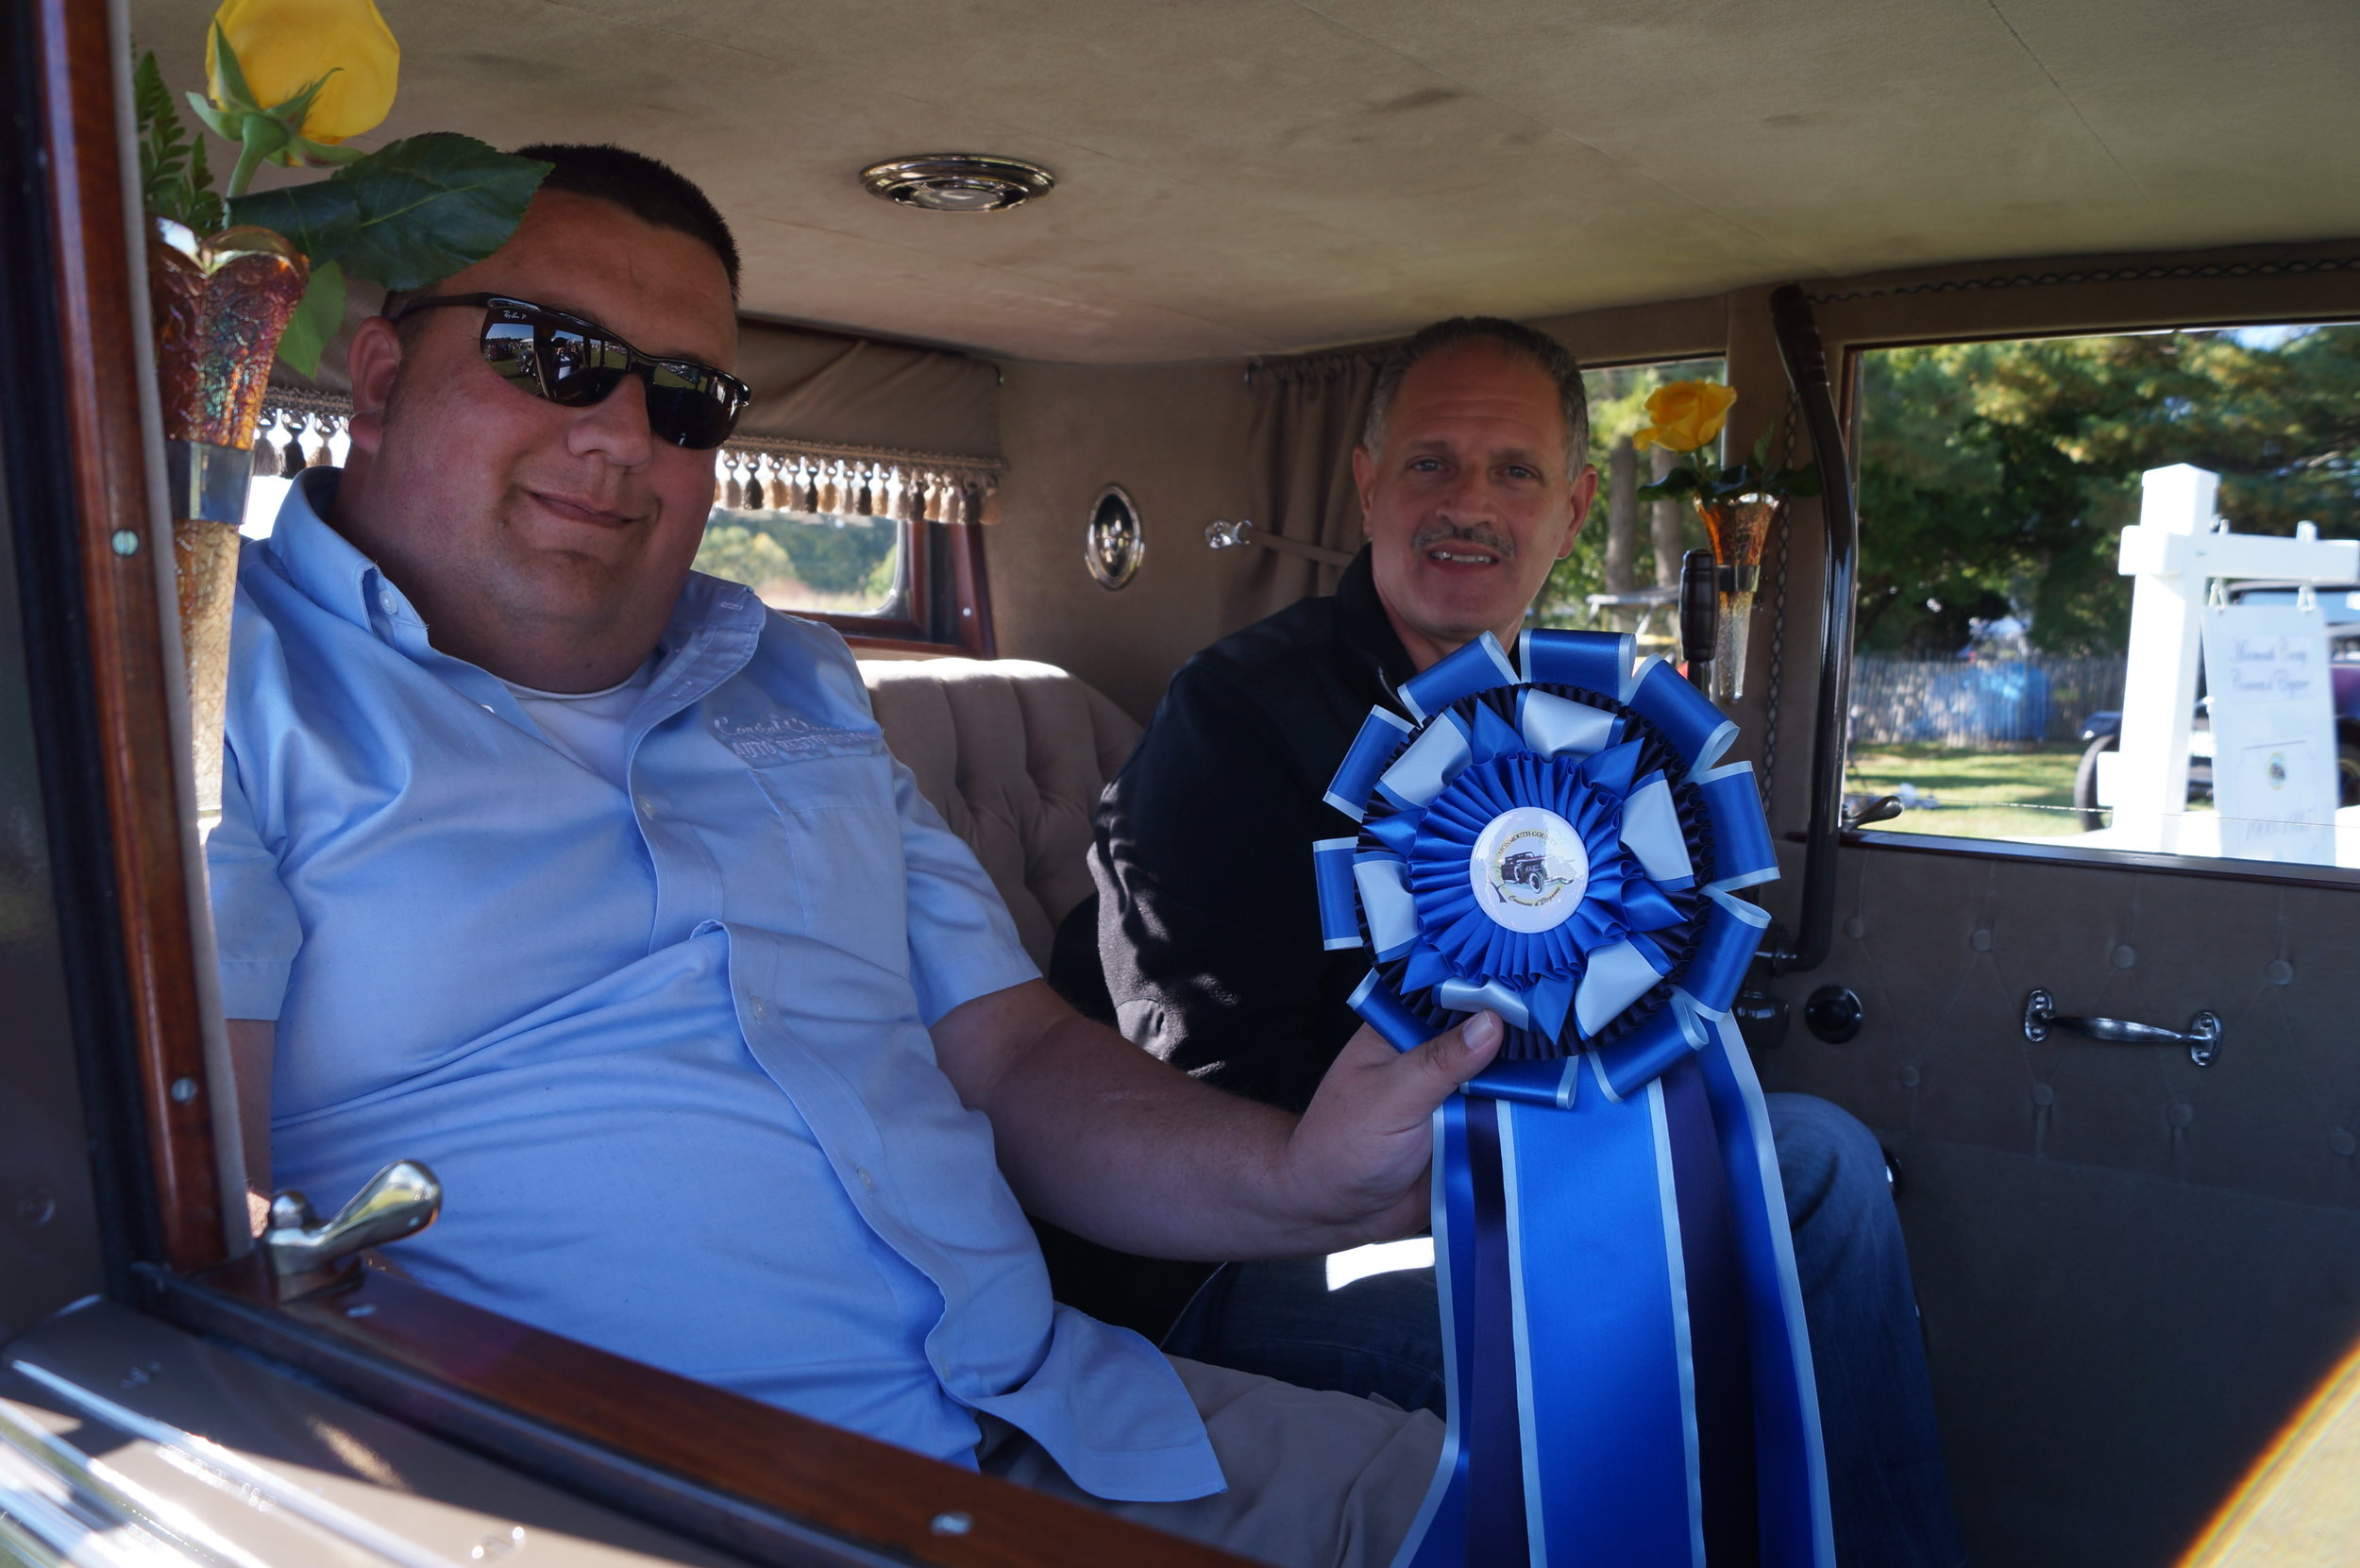 Monmouth CountyConcours d'Elegance 2014 - 1923 Detroit ElectricWINNERBEST IN CLASS